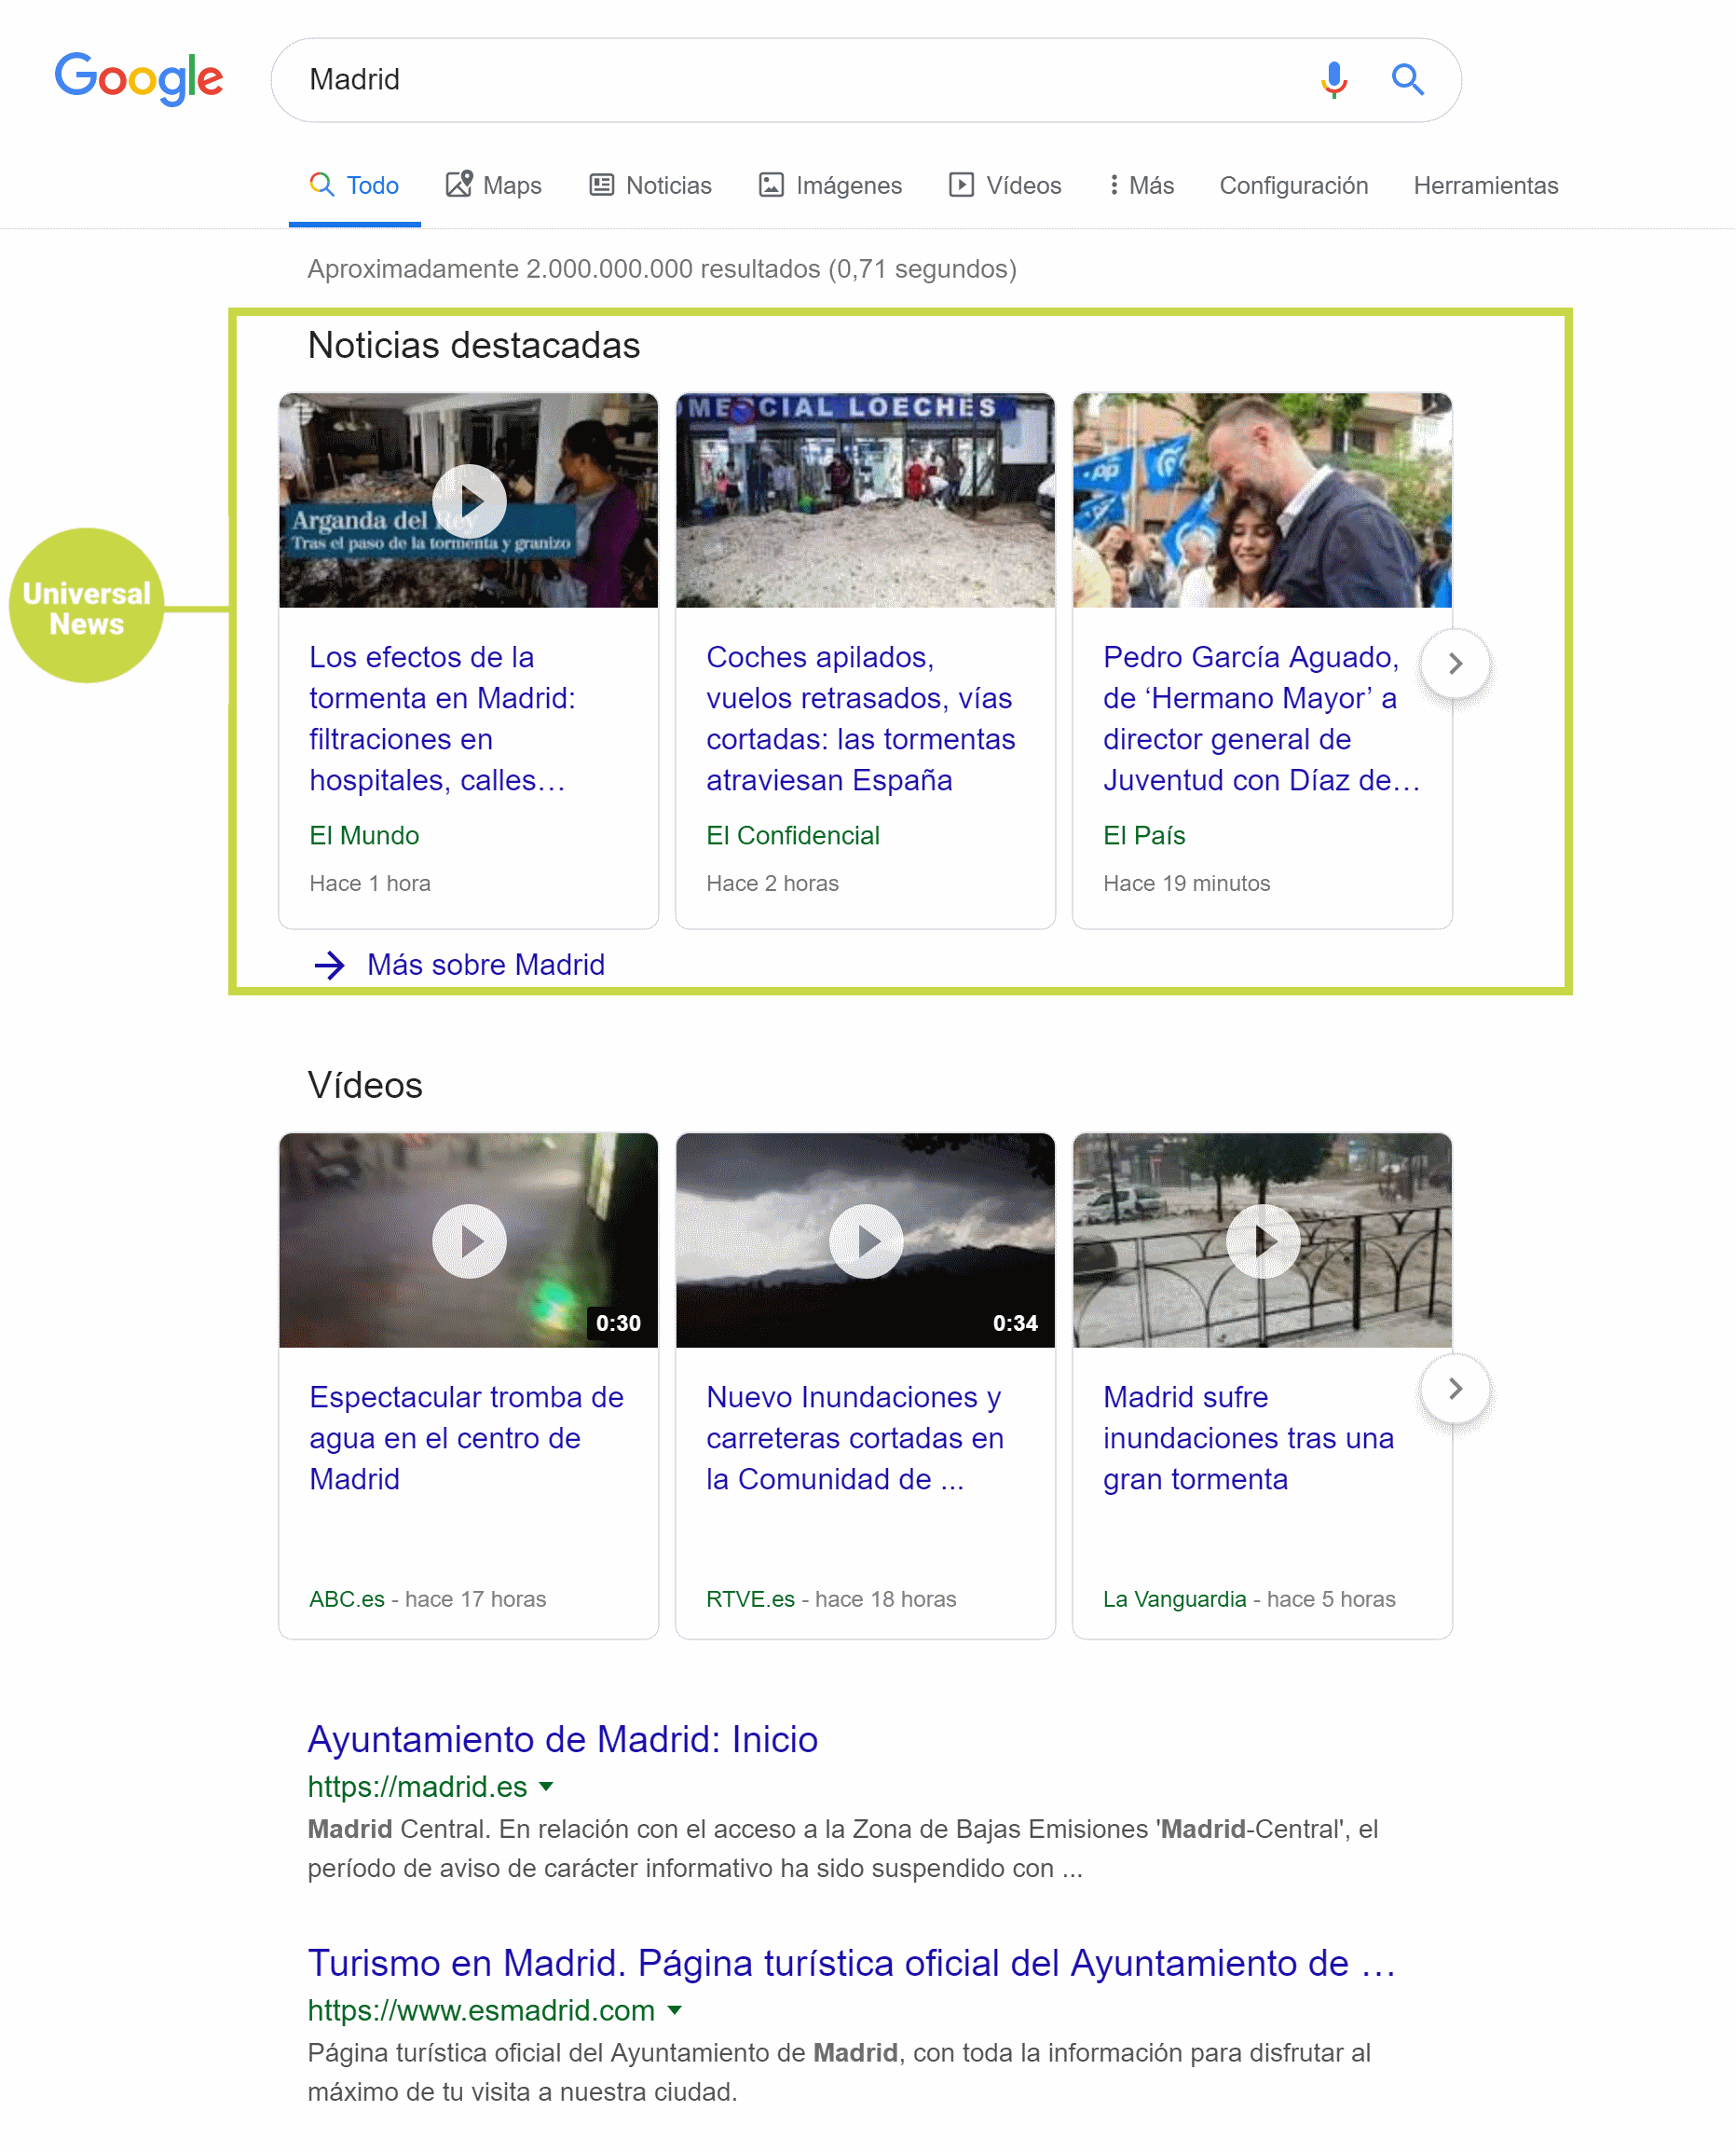 integracion de Google Unversal news